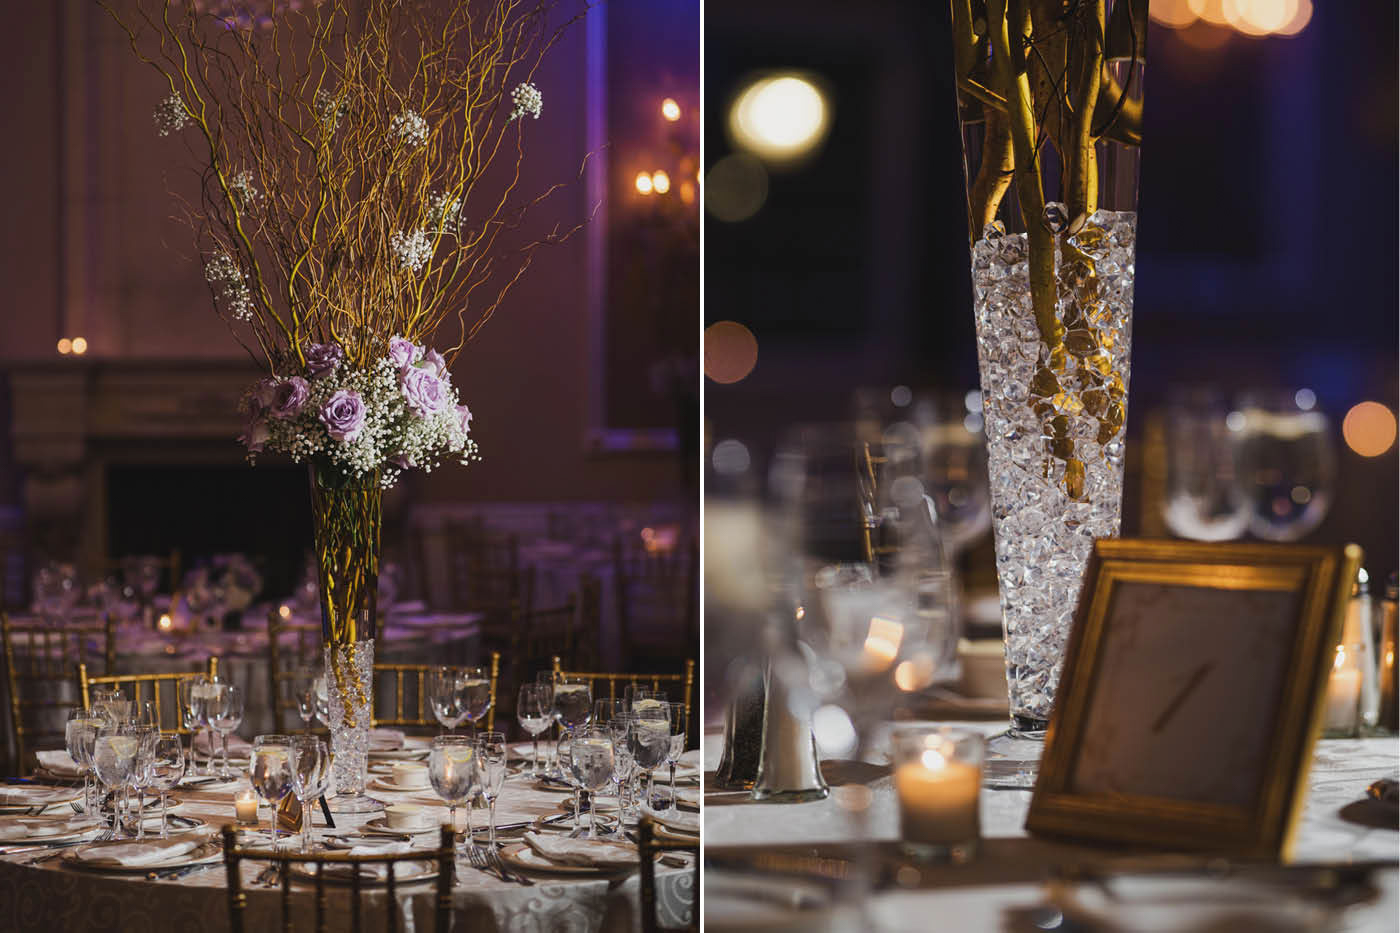 wedding decor at the Estate at Florentine Gardens by Weddings by Hanel